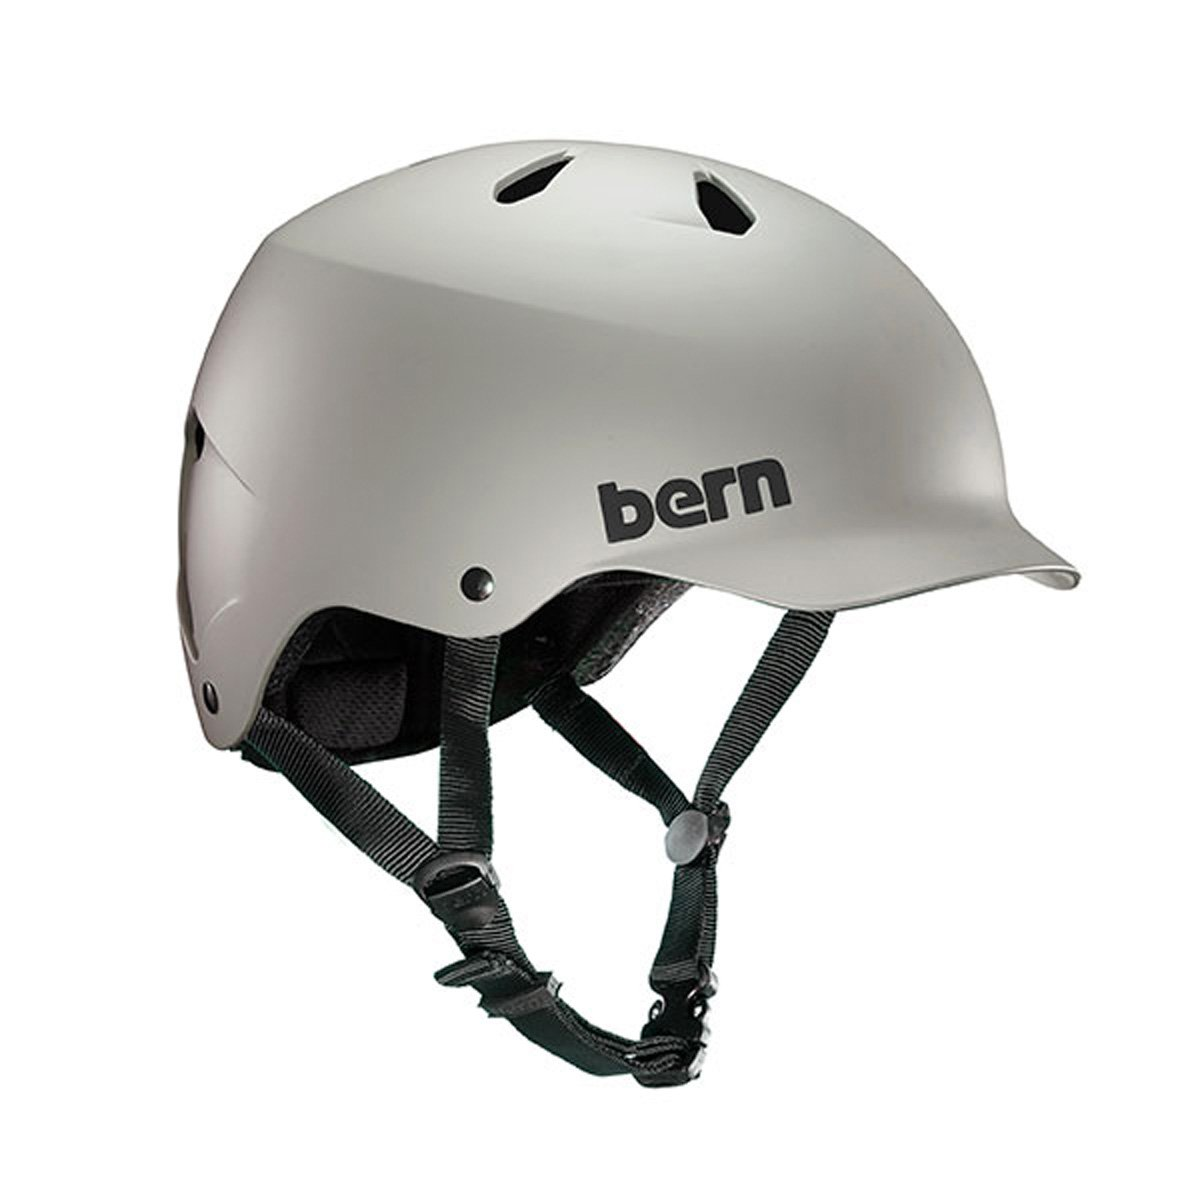 Bern Helm Watts Eps Casco, Unisex Adulto BERZ8|#Bern Watts - EPS